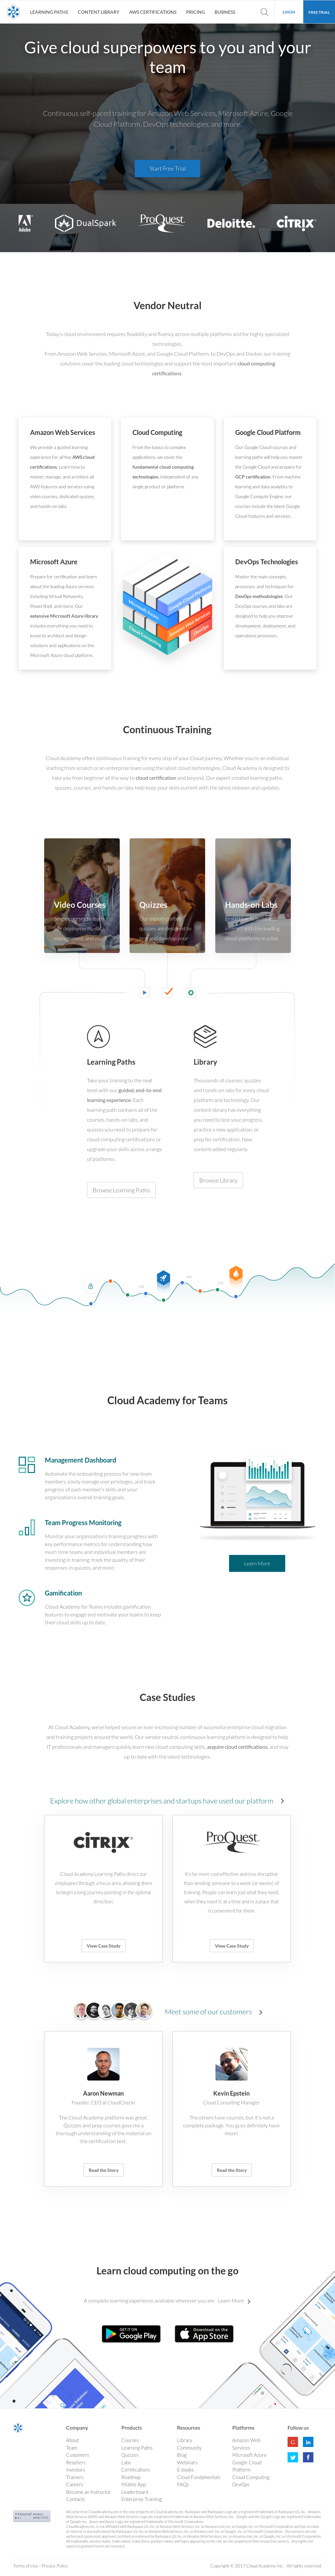 Cloud Academy Competitors, Revenue and Employees - Owler